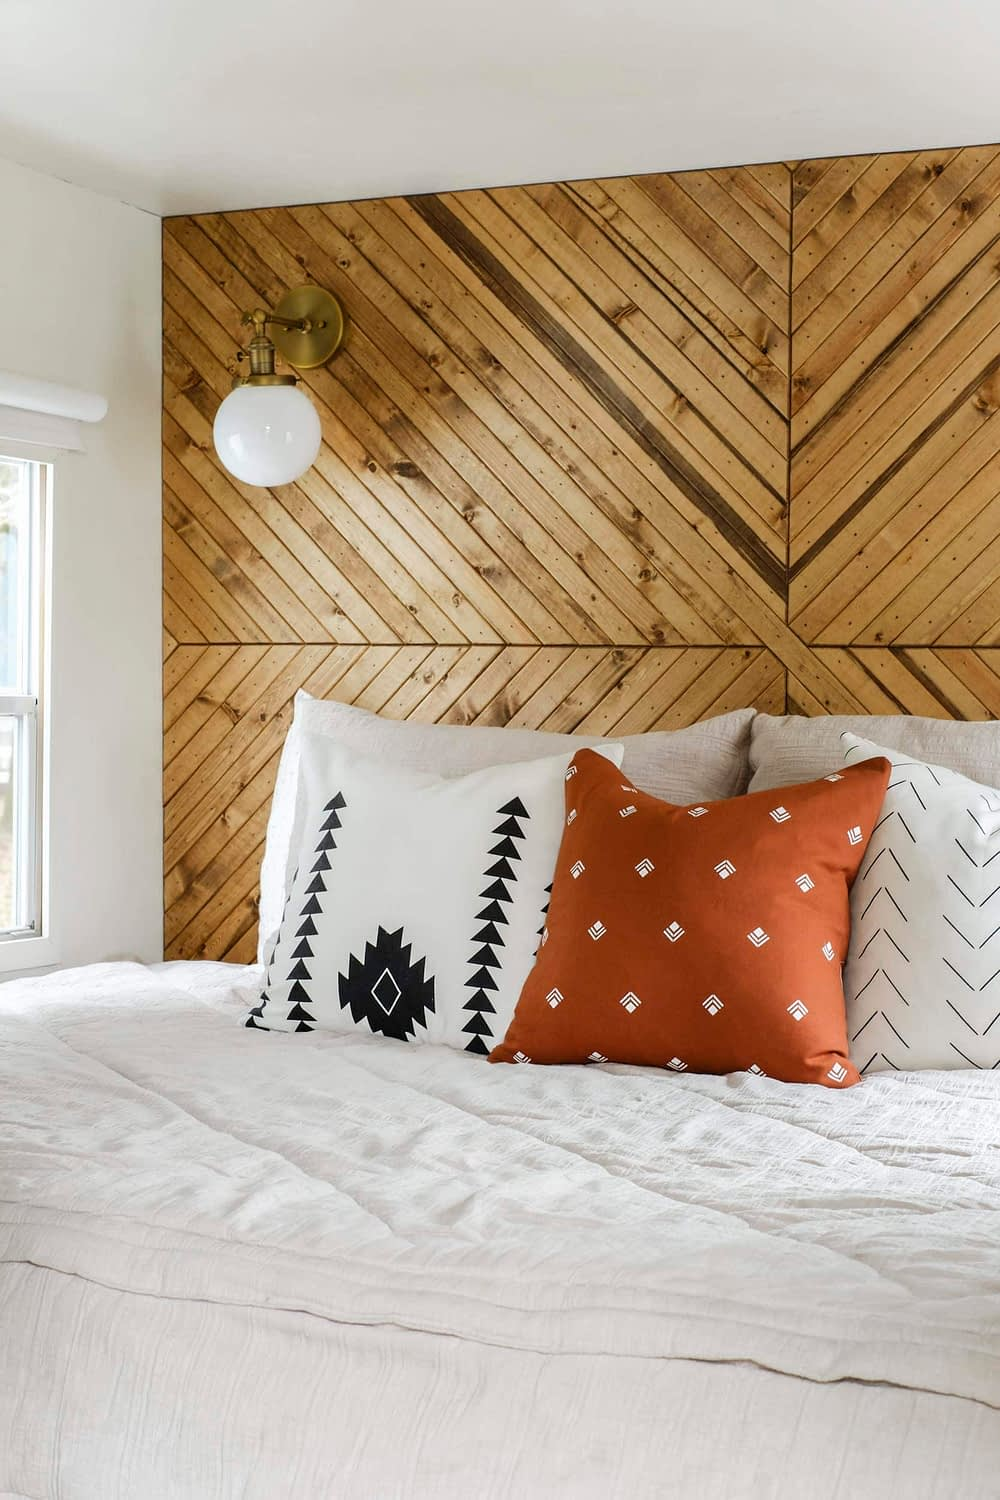 RV bedding with throw pillows and a wood accent wall headboard